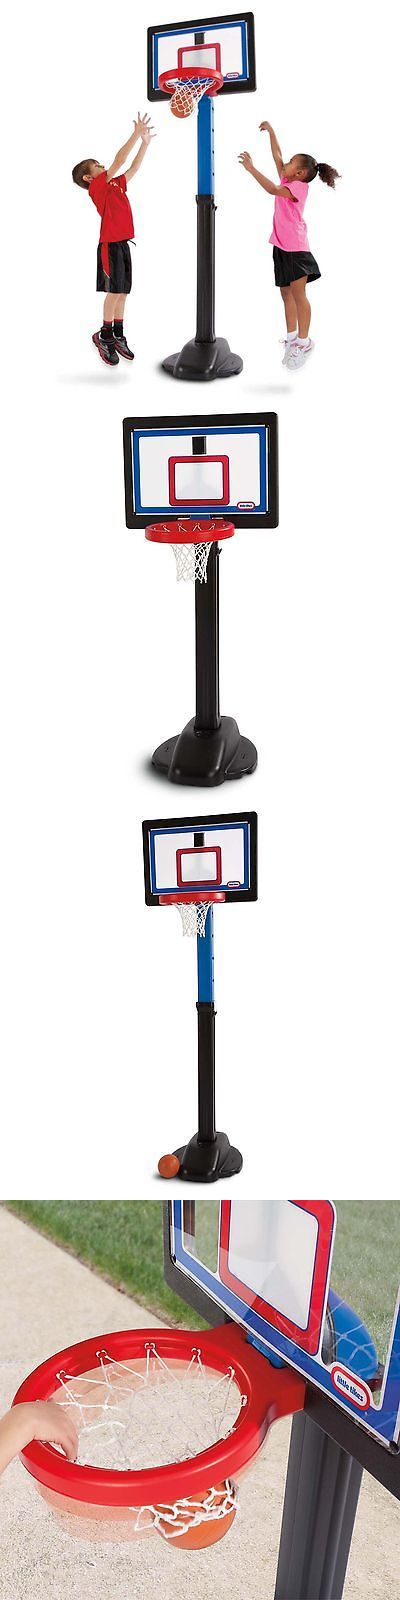 Other Basketball 2023: Little Tikes Play Like A Pro Basketball Set, Generic -> BUY IT NOW ONLY: $63.74 on eBay!